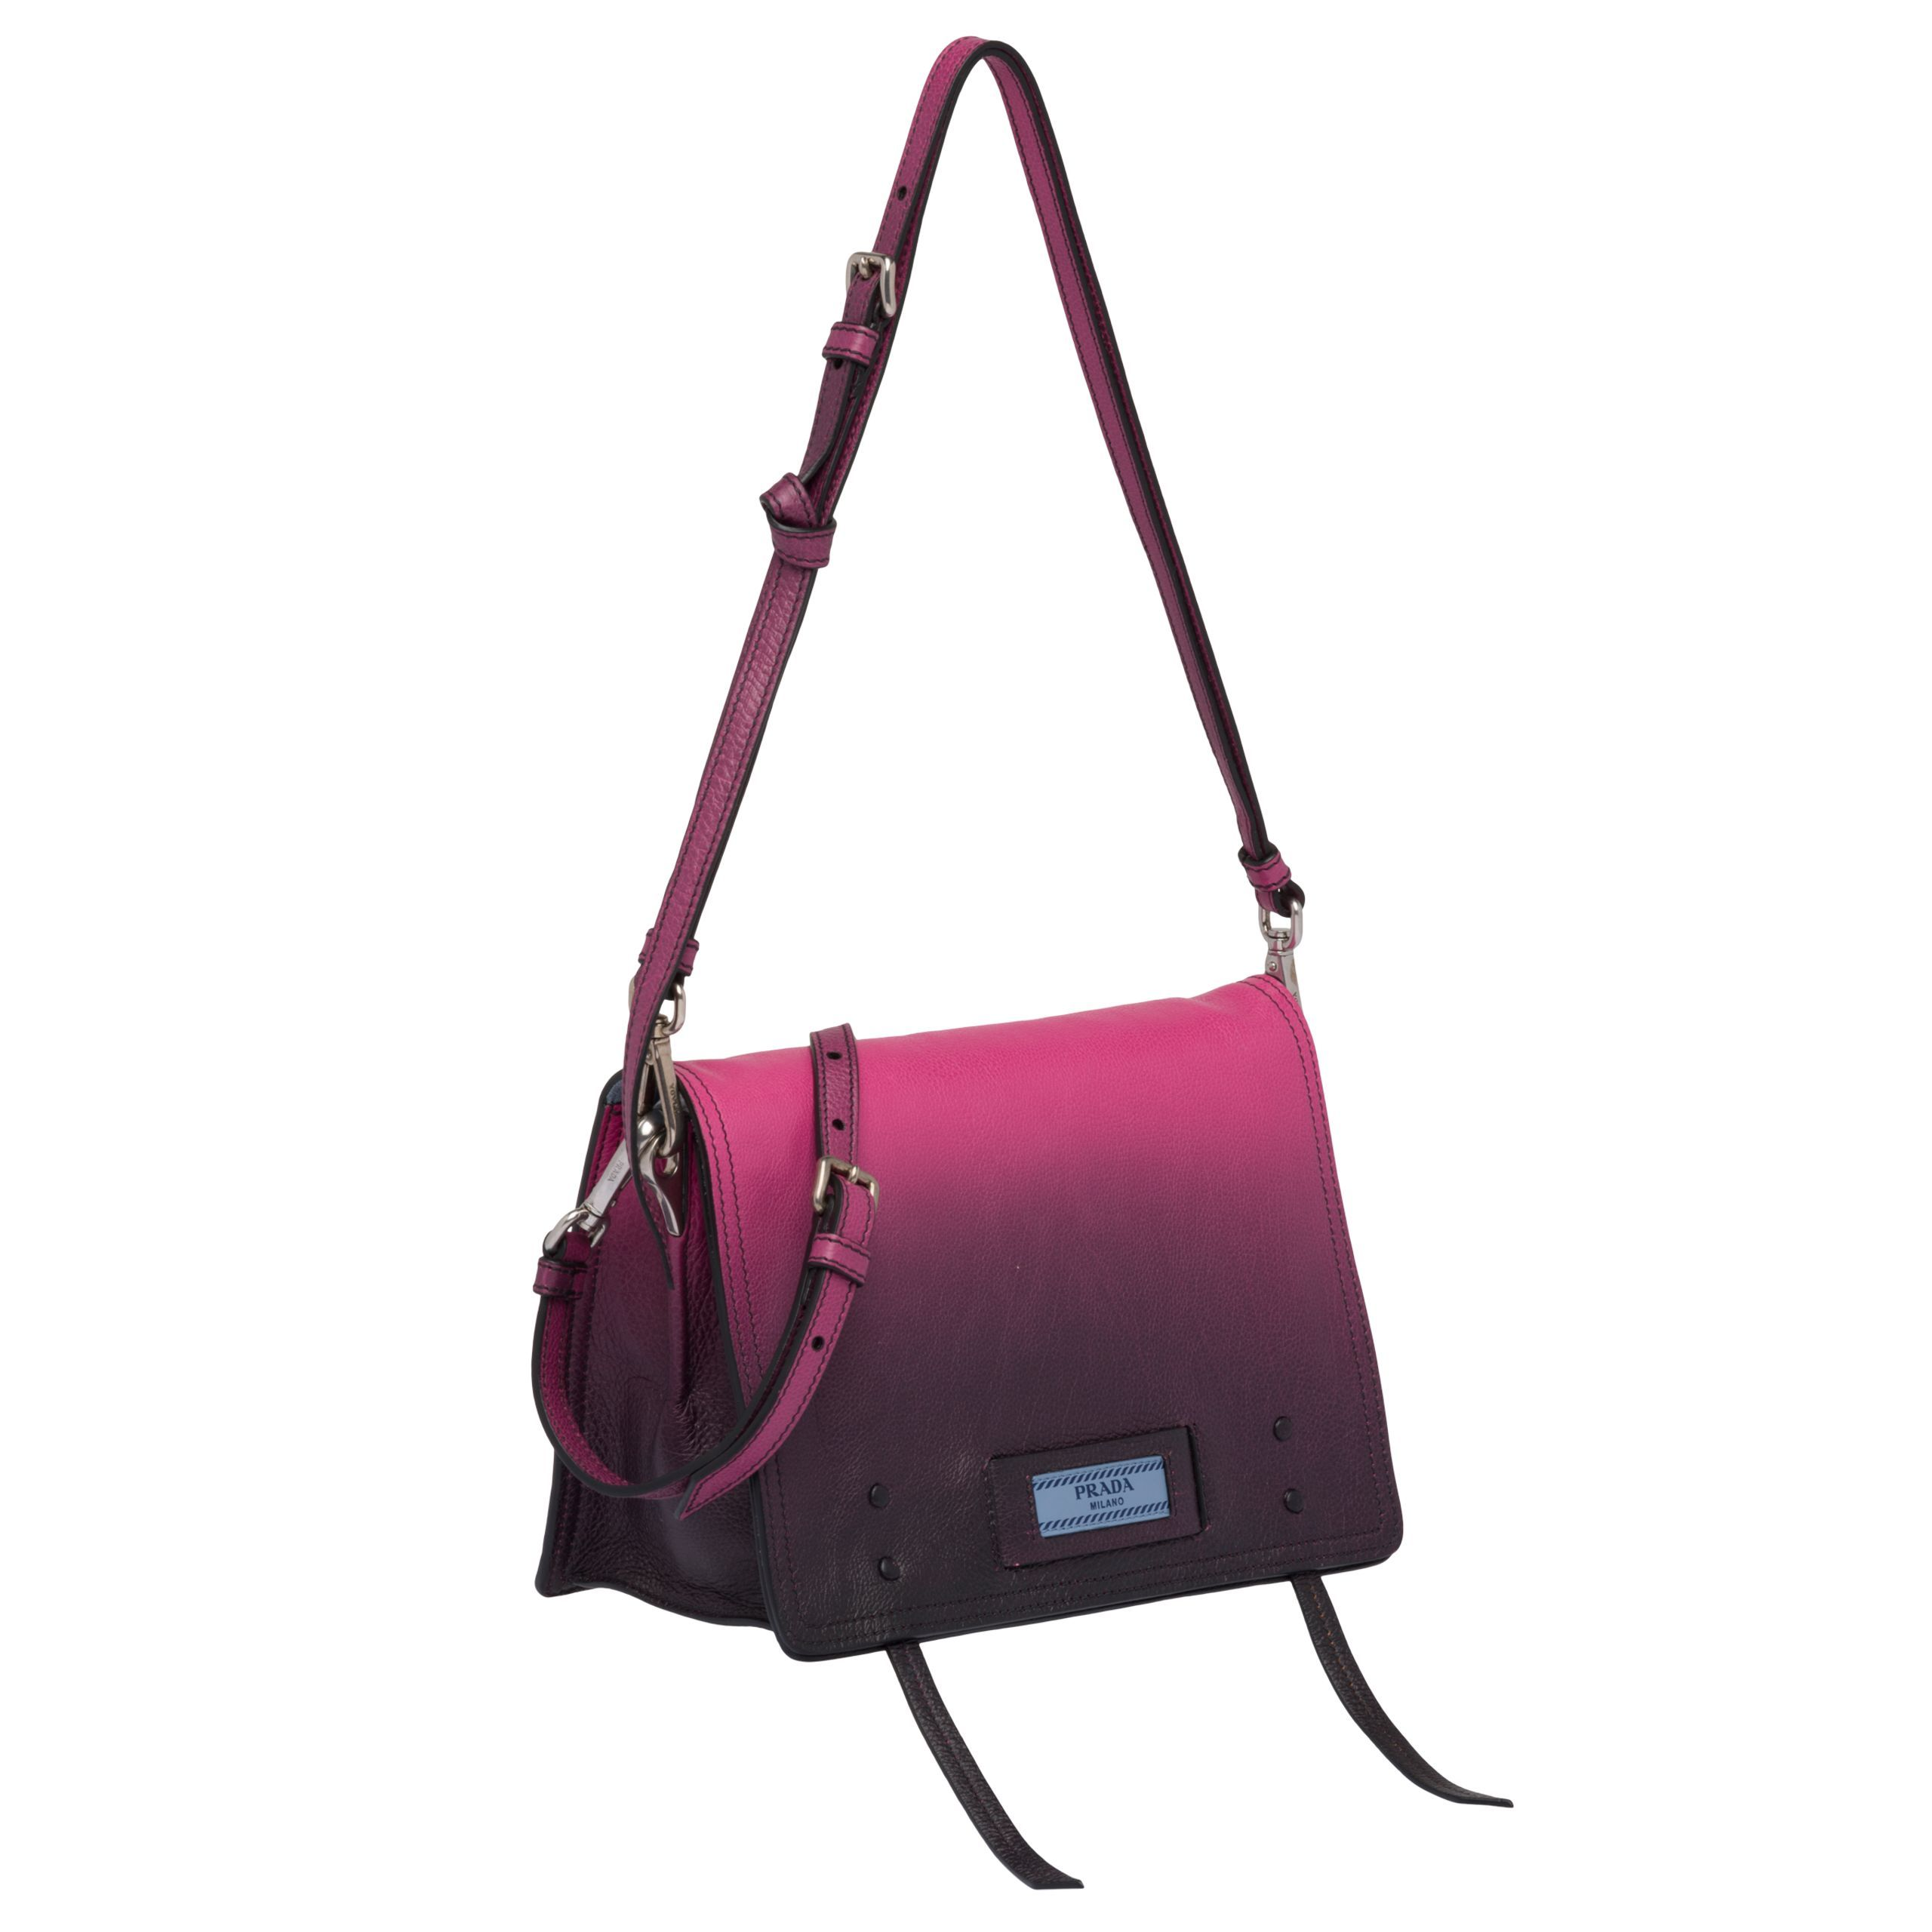 9ae1cabf8349 Prada Etiquette leather bag. Find this Pin and more on Handbags ...